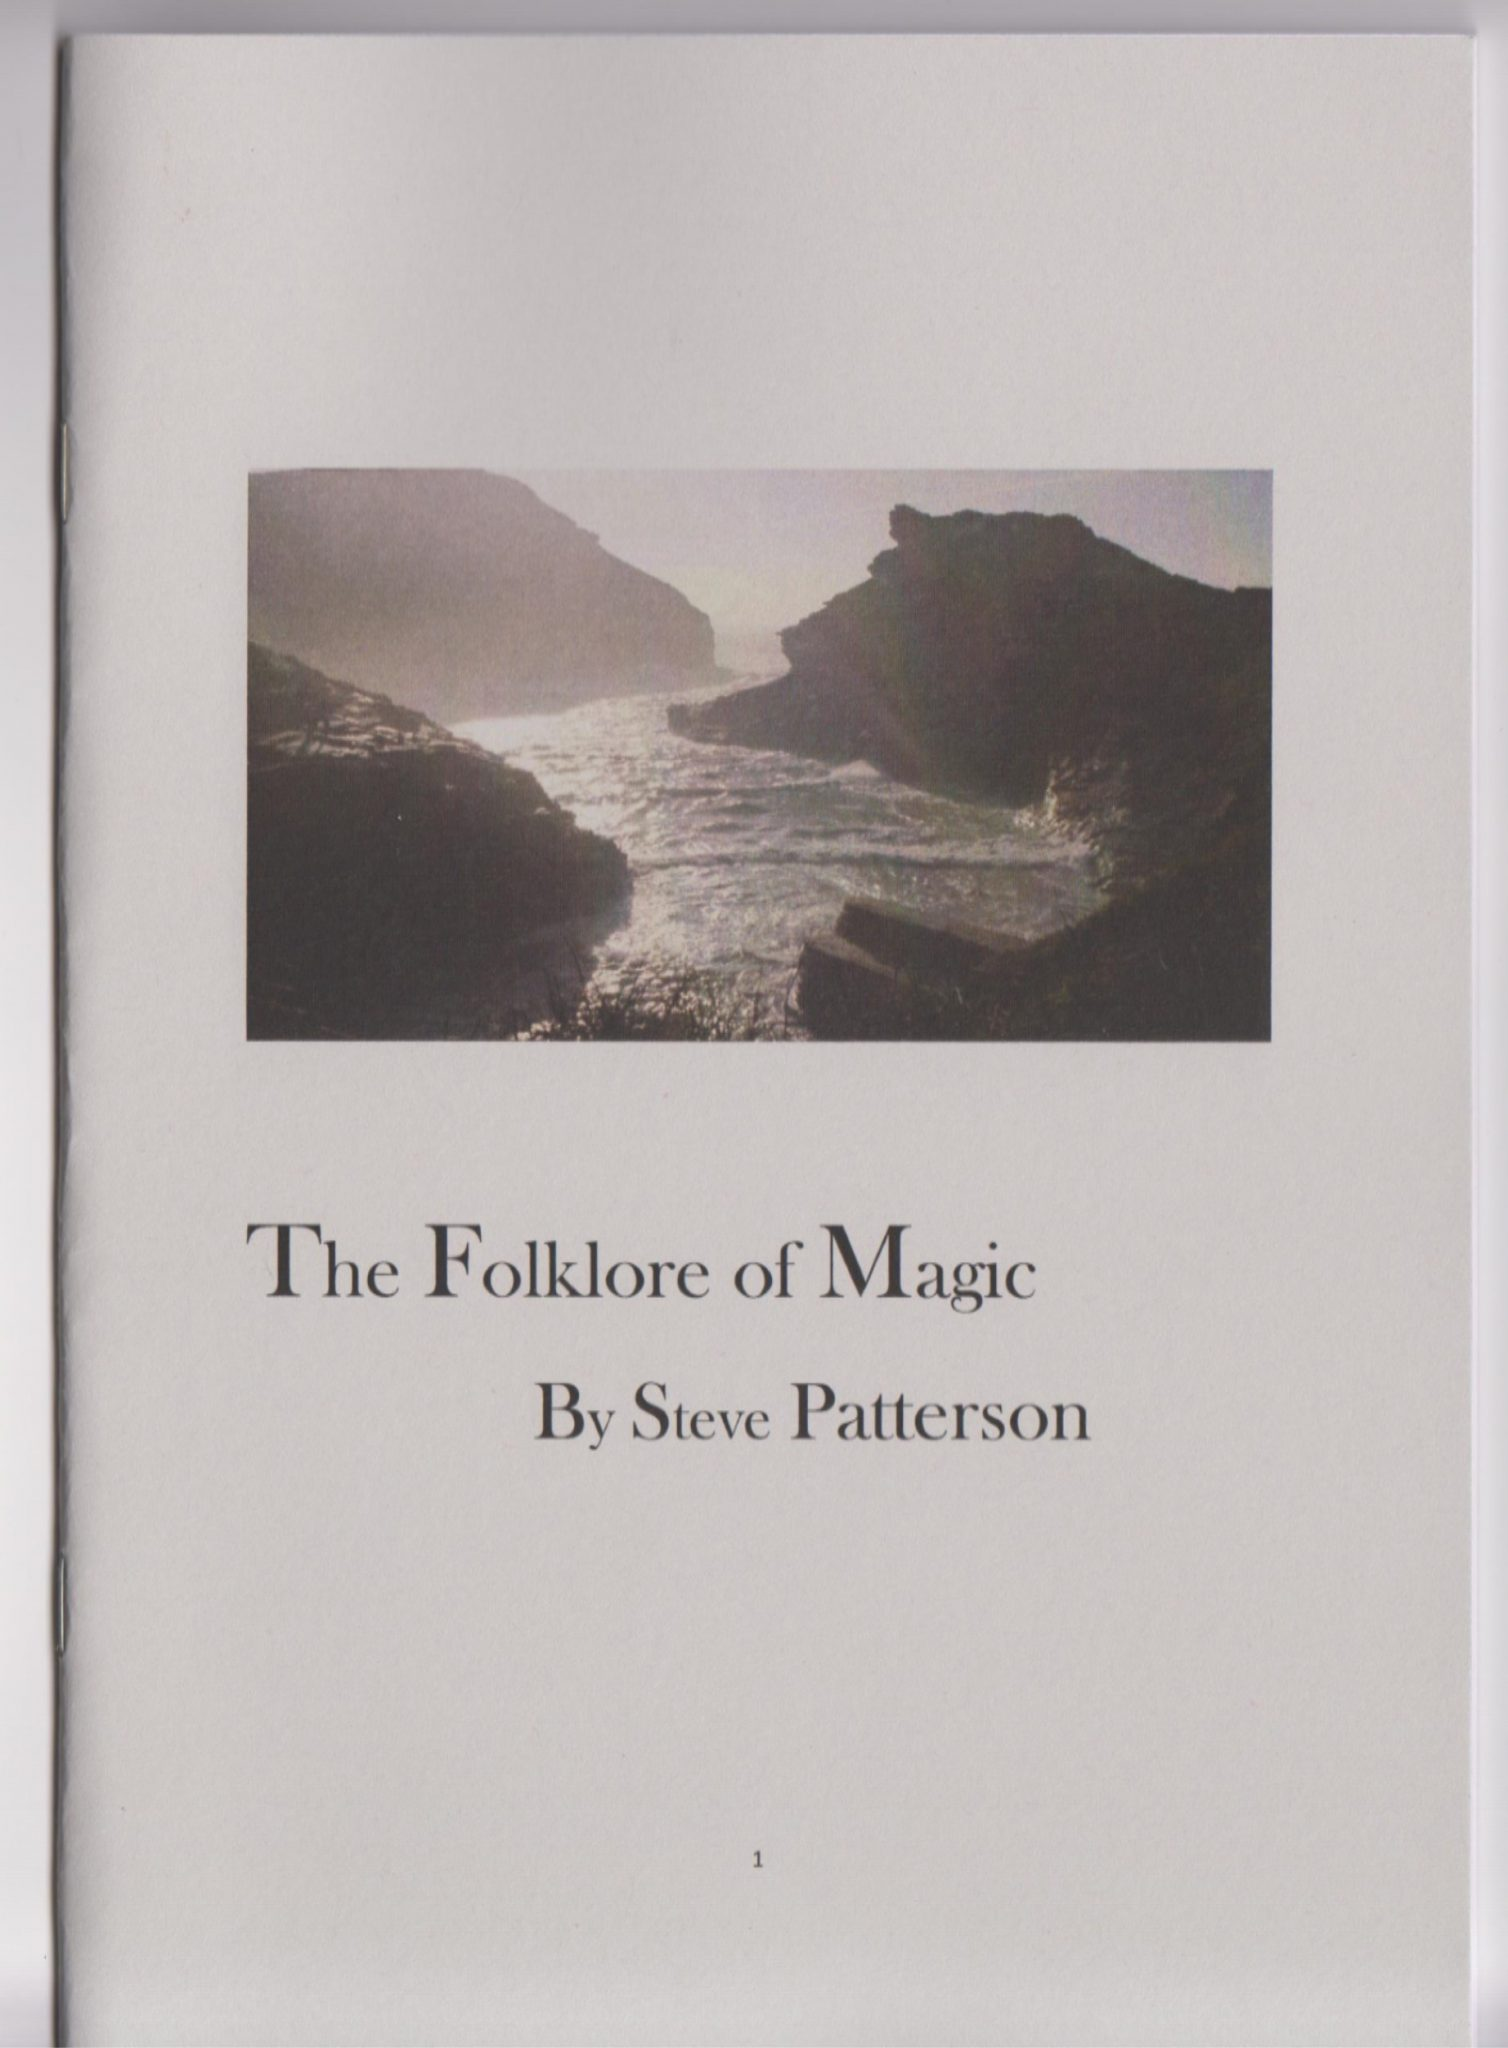 An Introduction to the Folklore of Magic Workshop review